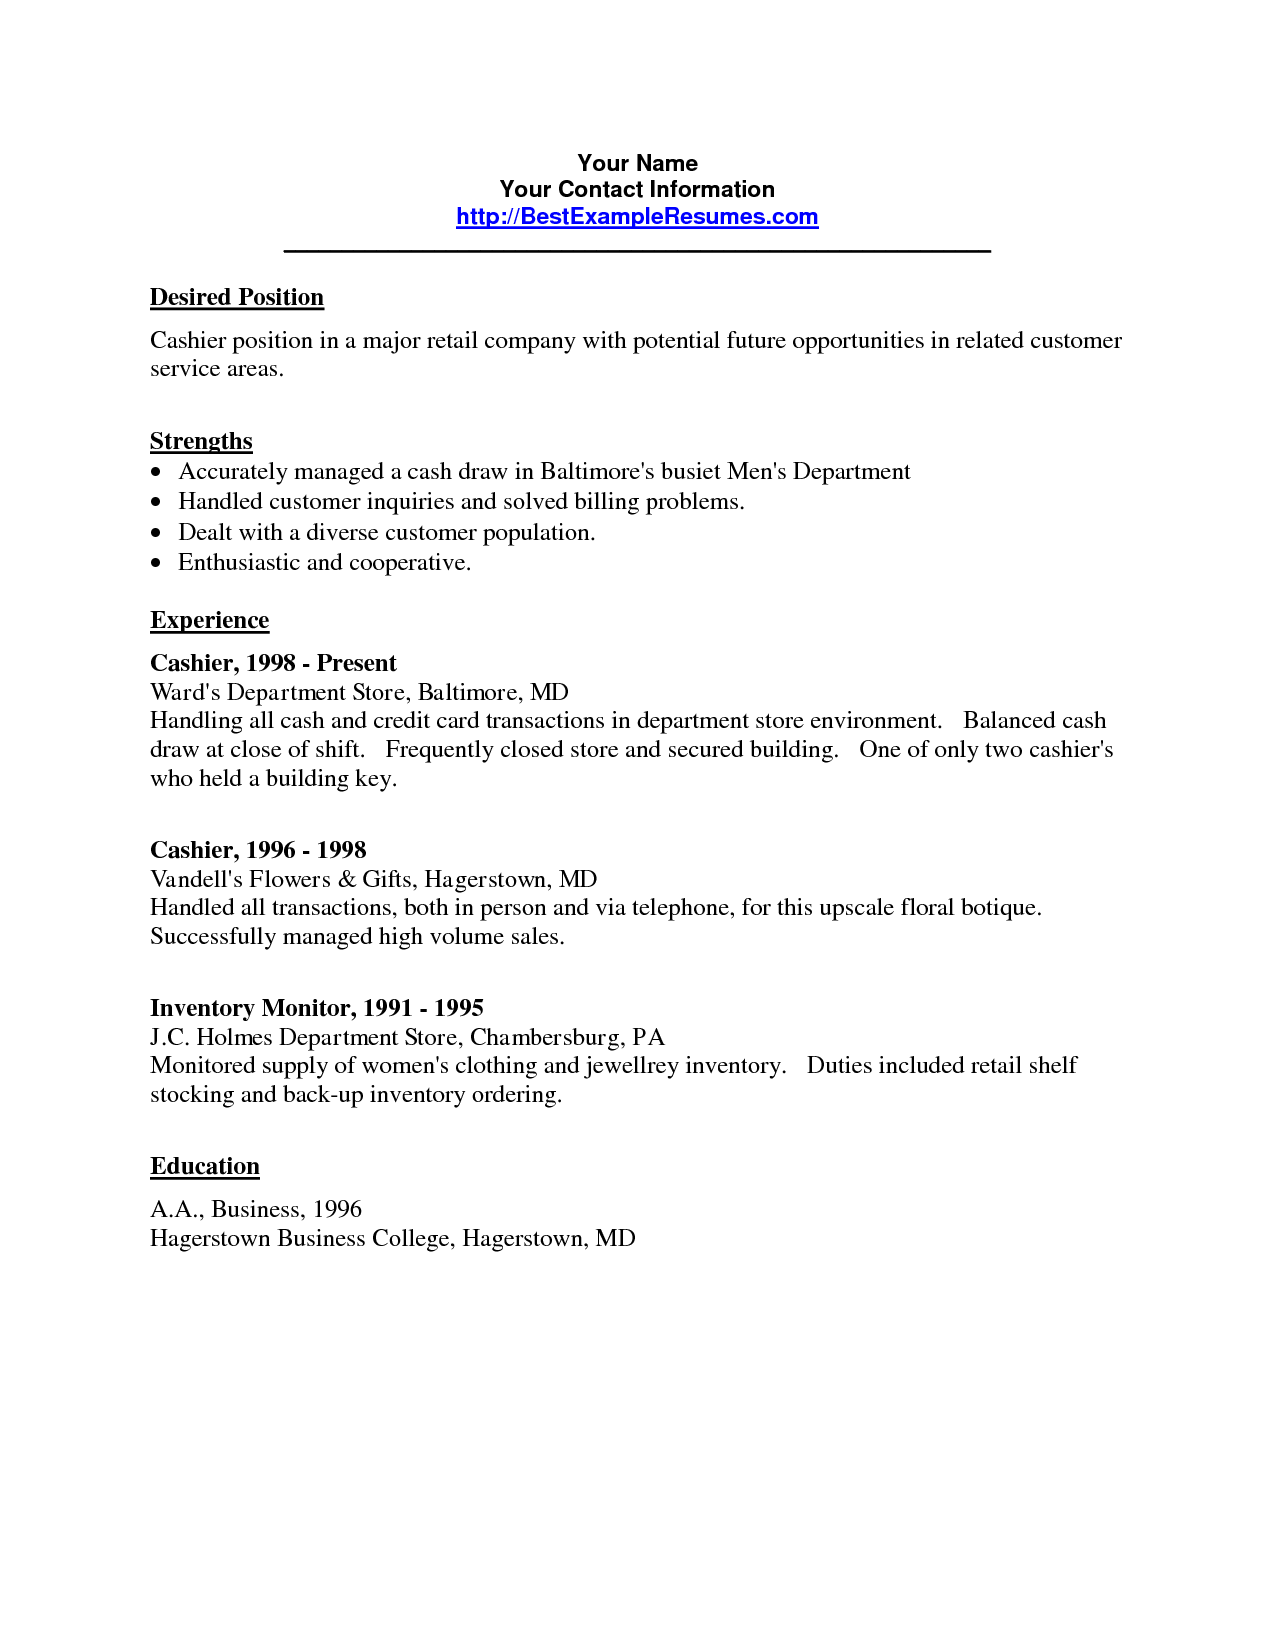 Example Of A Simple Resume Job Resume Sample Cashier Examples For Application Impressive